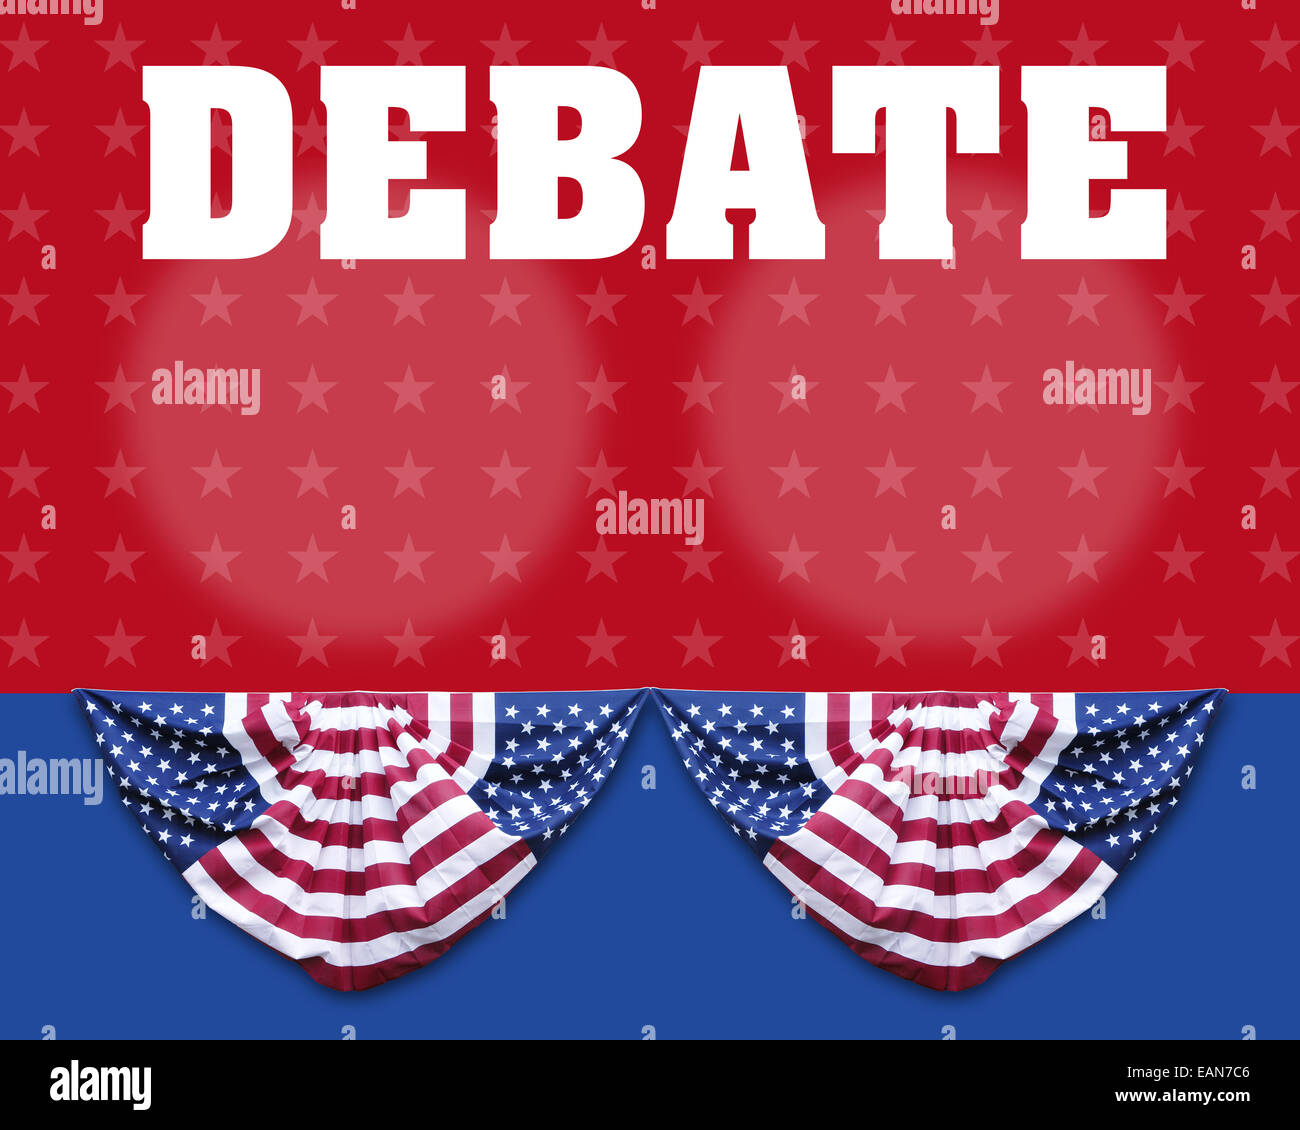 election debate poster red white and blue election campaign poster